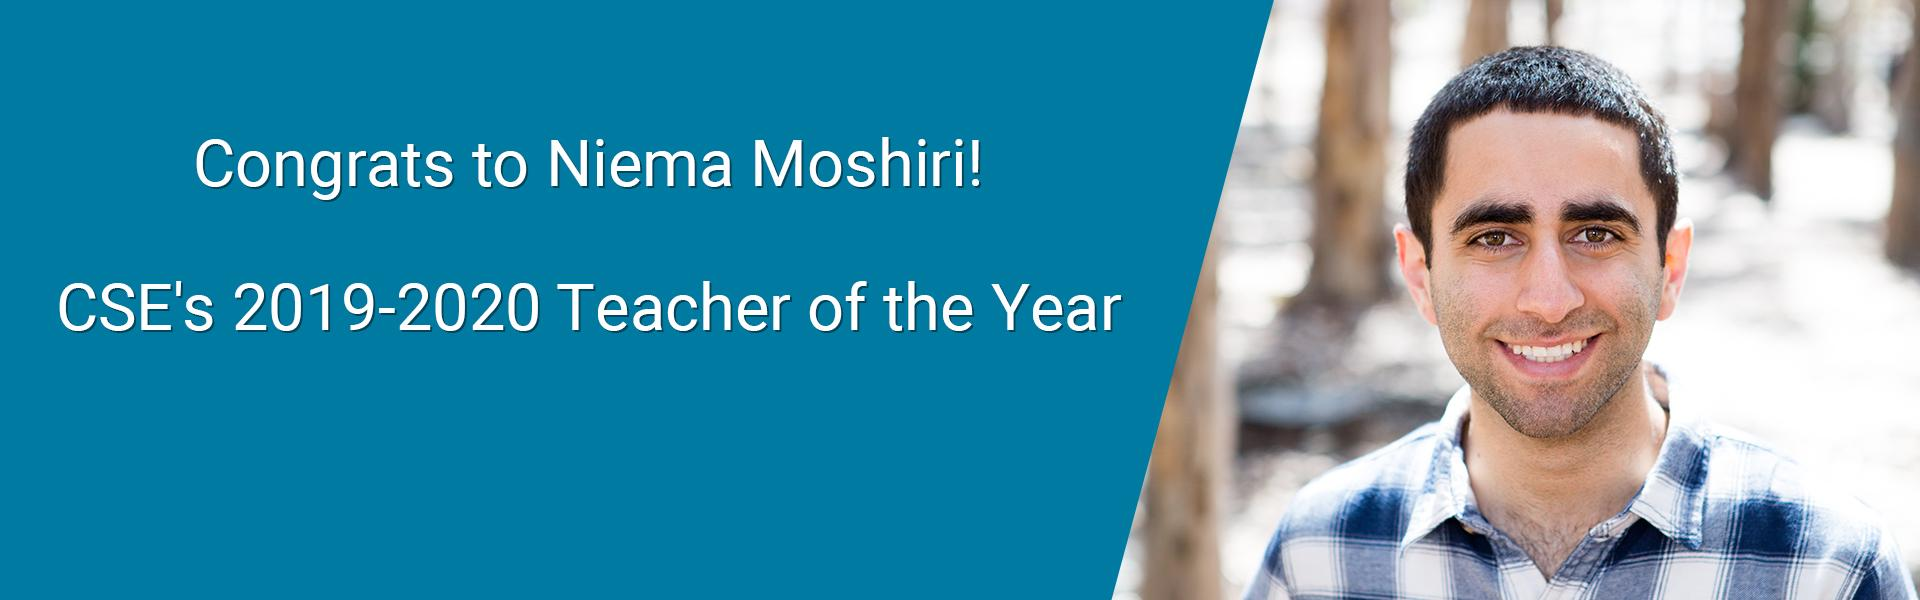 Congrats to Niema Moshiri: CSE's Teacher of the Year